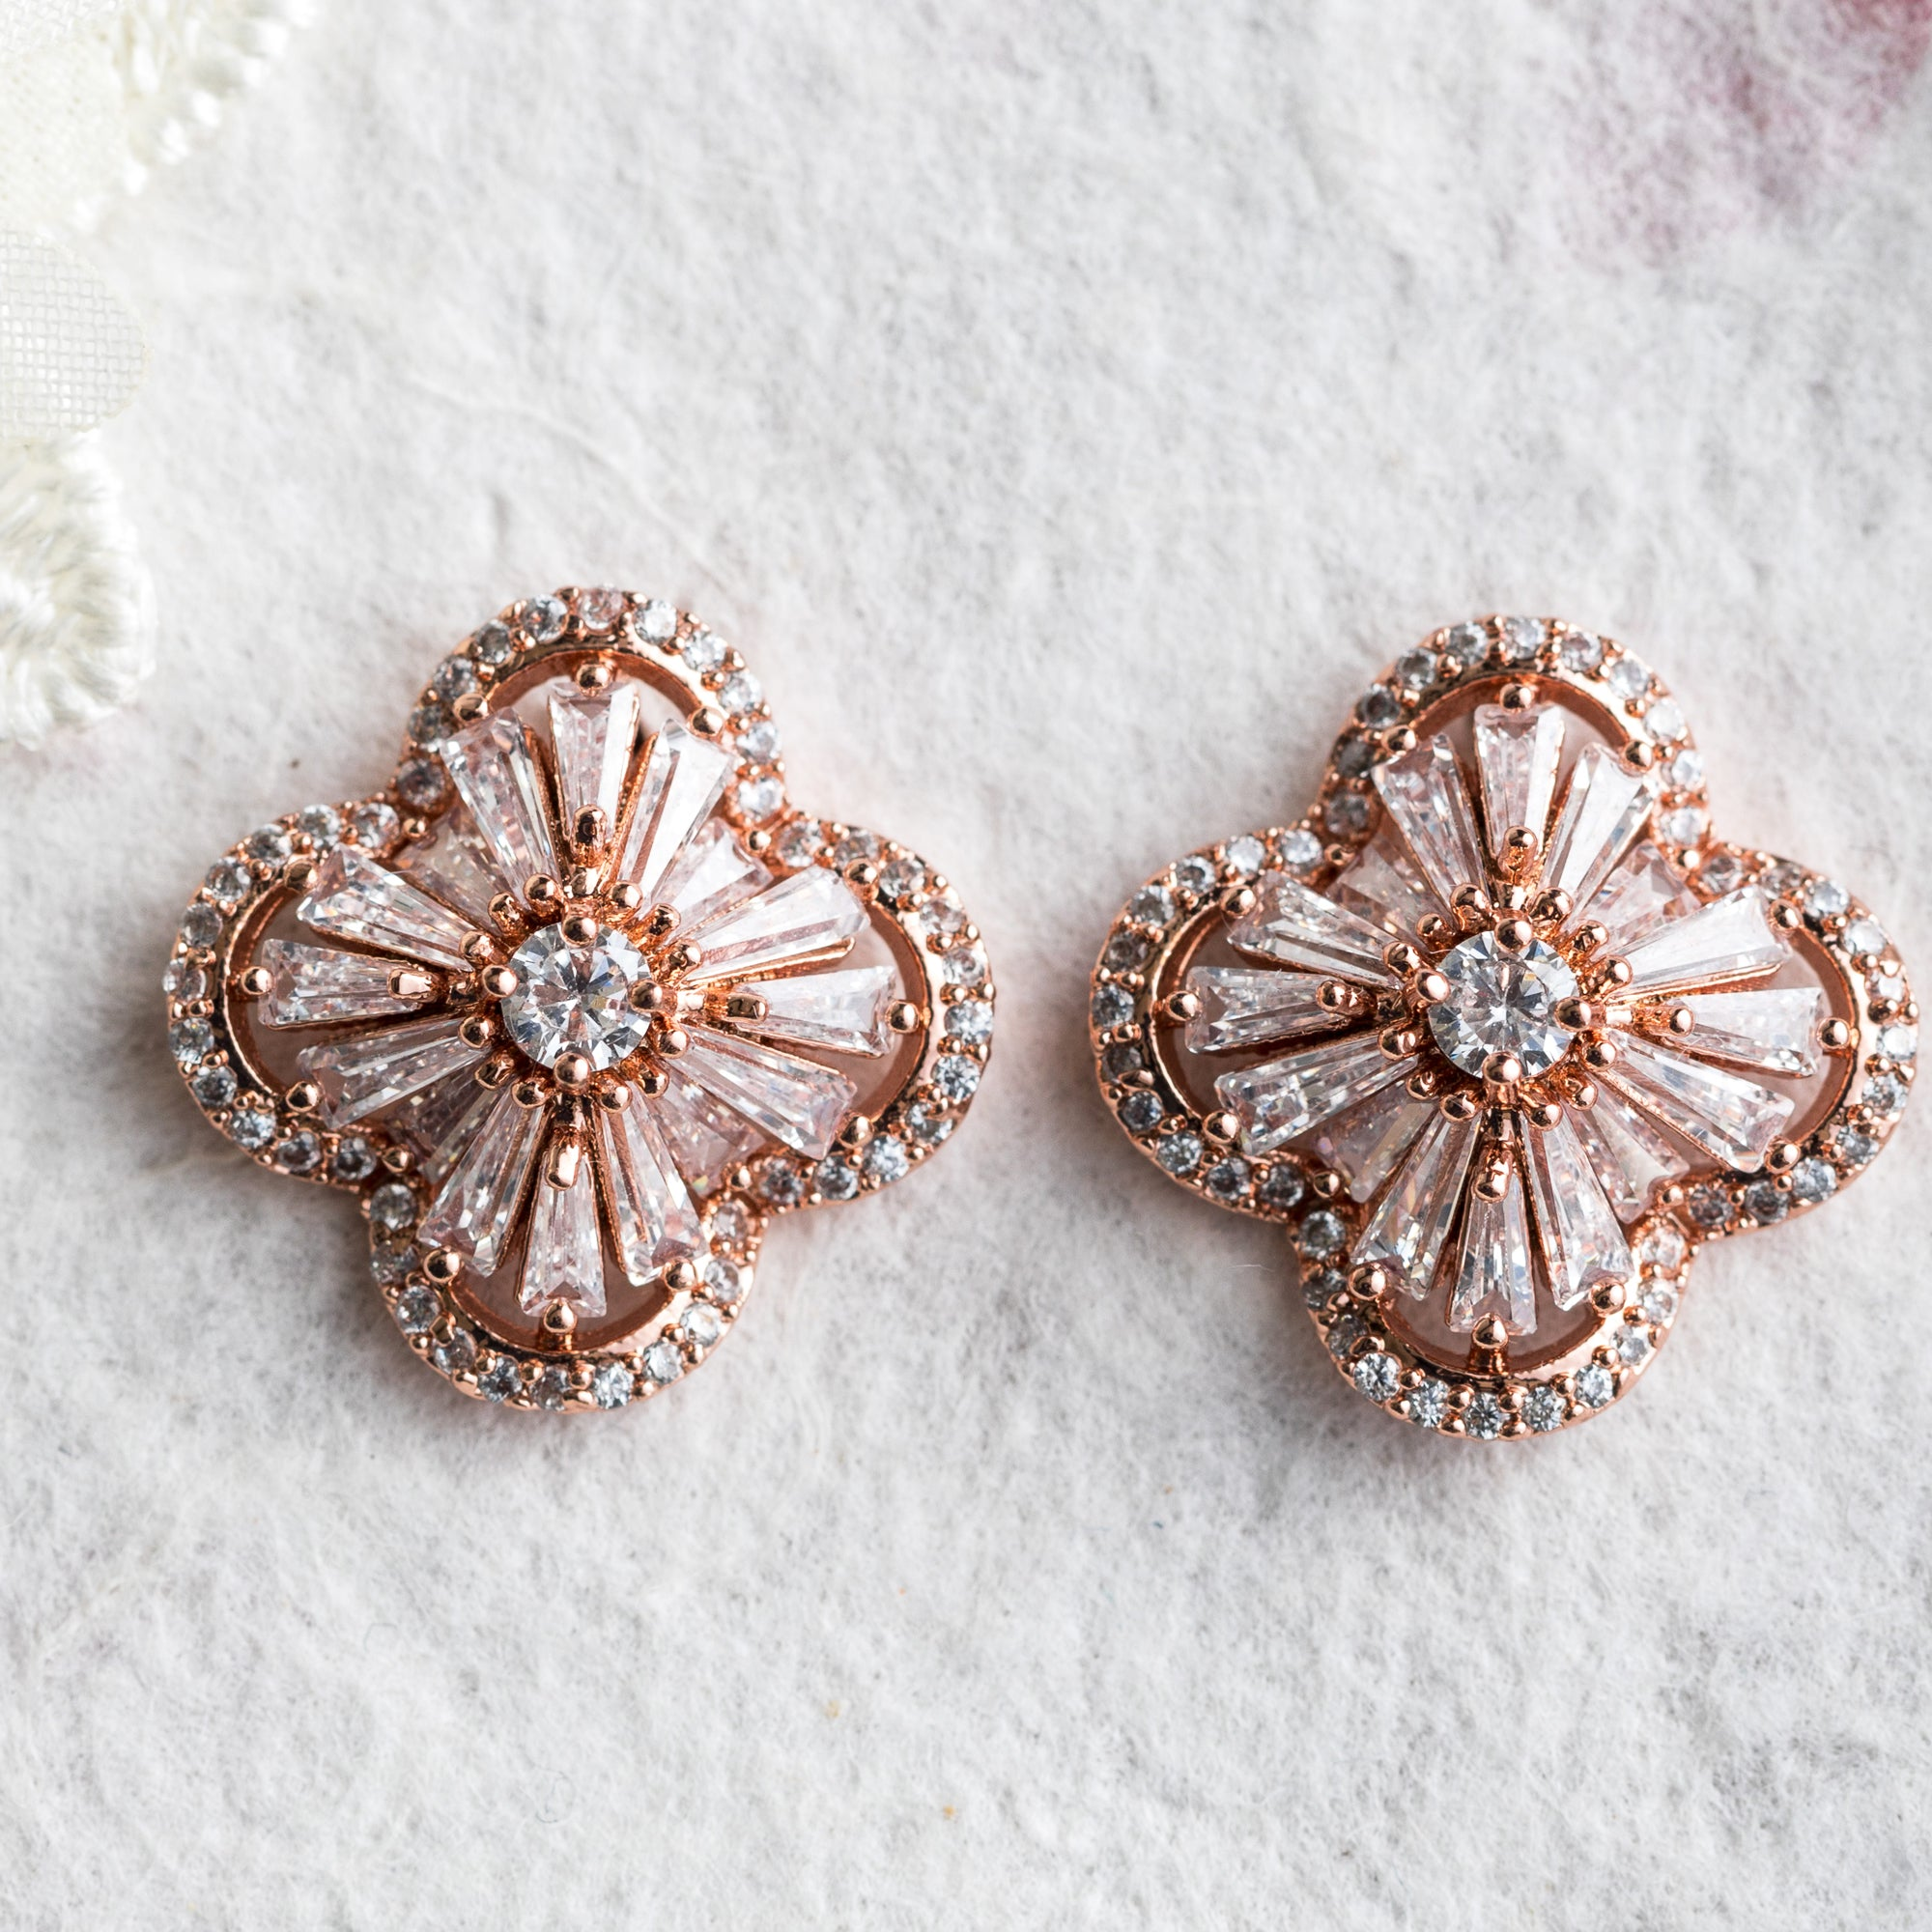 Hina gold crystal stud earrings